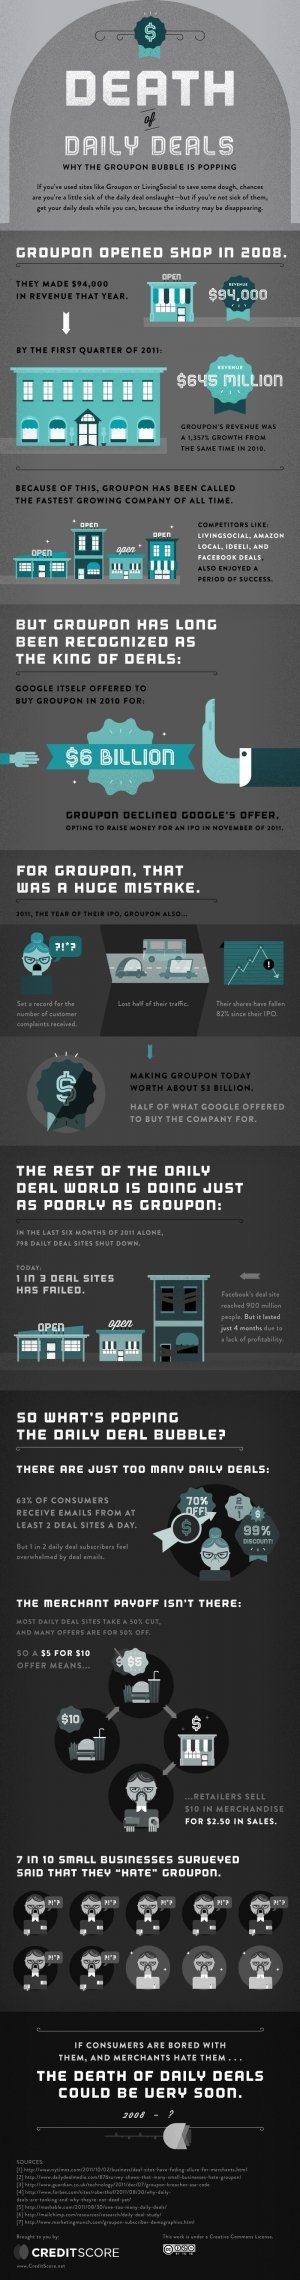 Death of Daily Deals Infographic